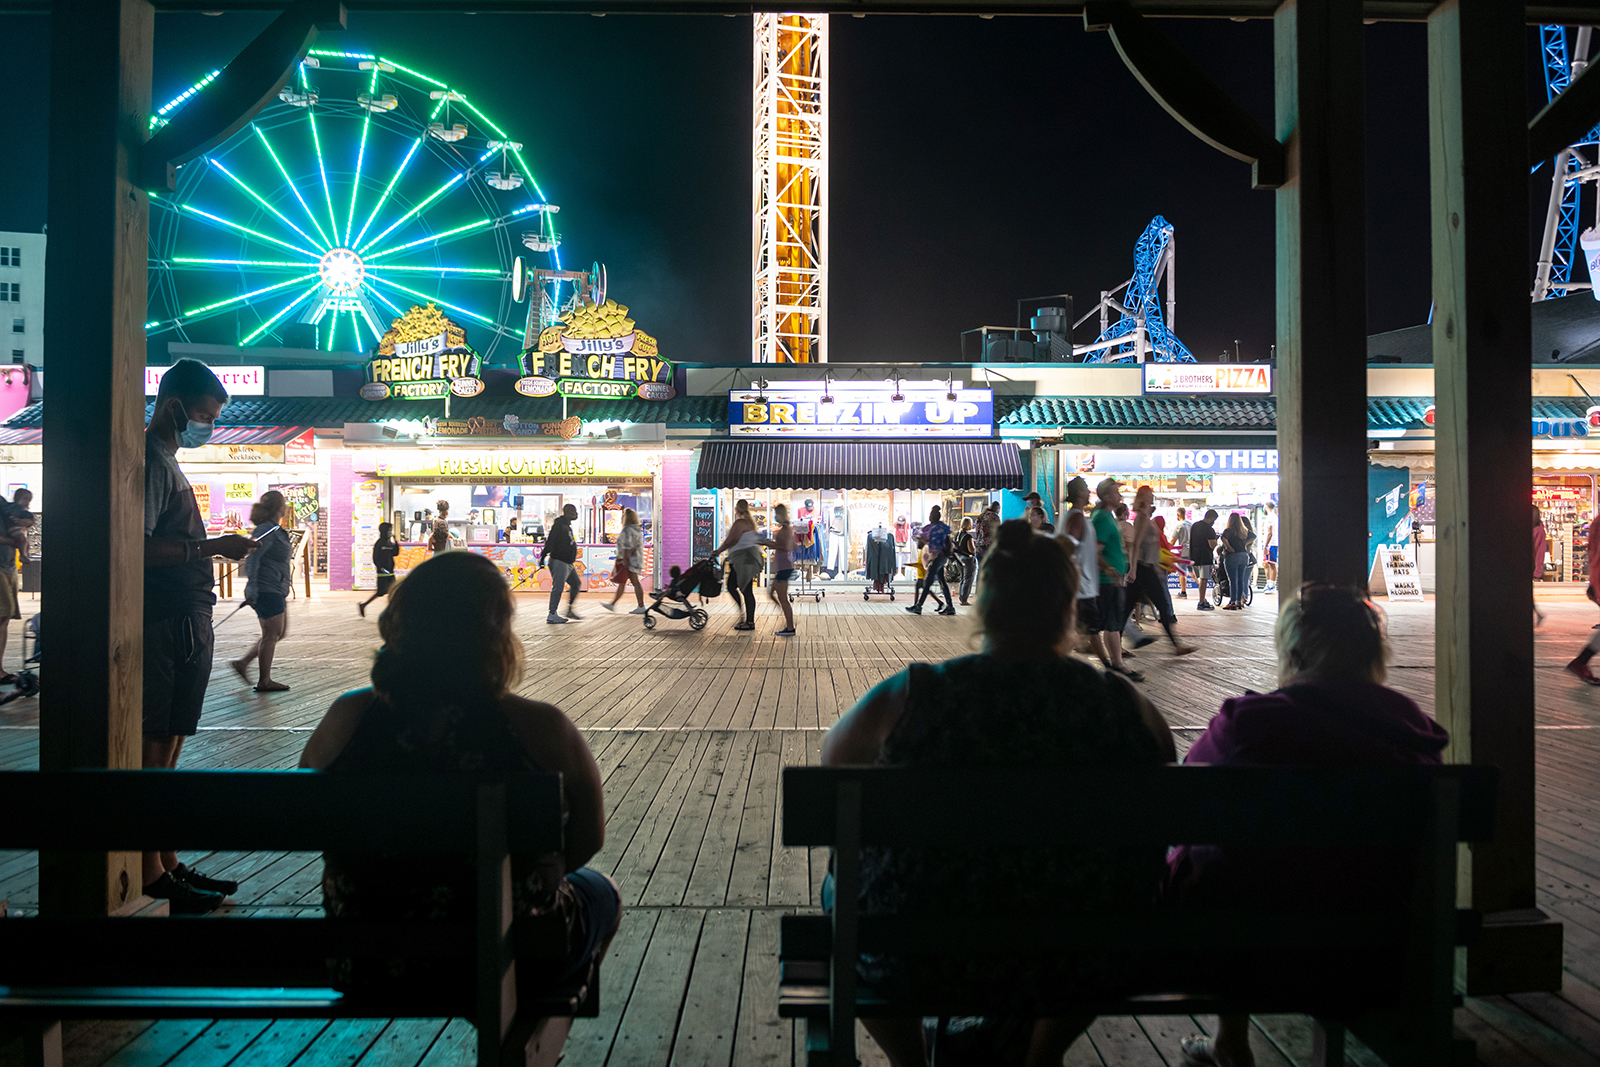 People sit on benches facing the ferris wheel in Ocean City, New Jersey on September 7.